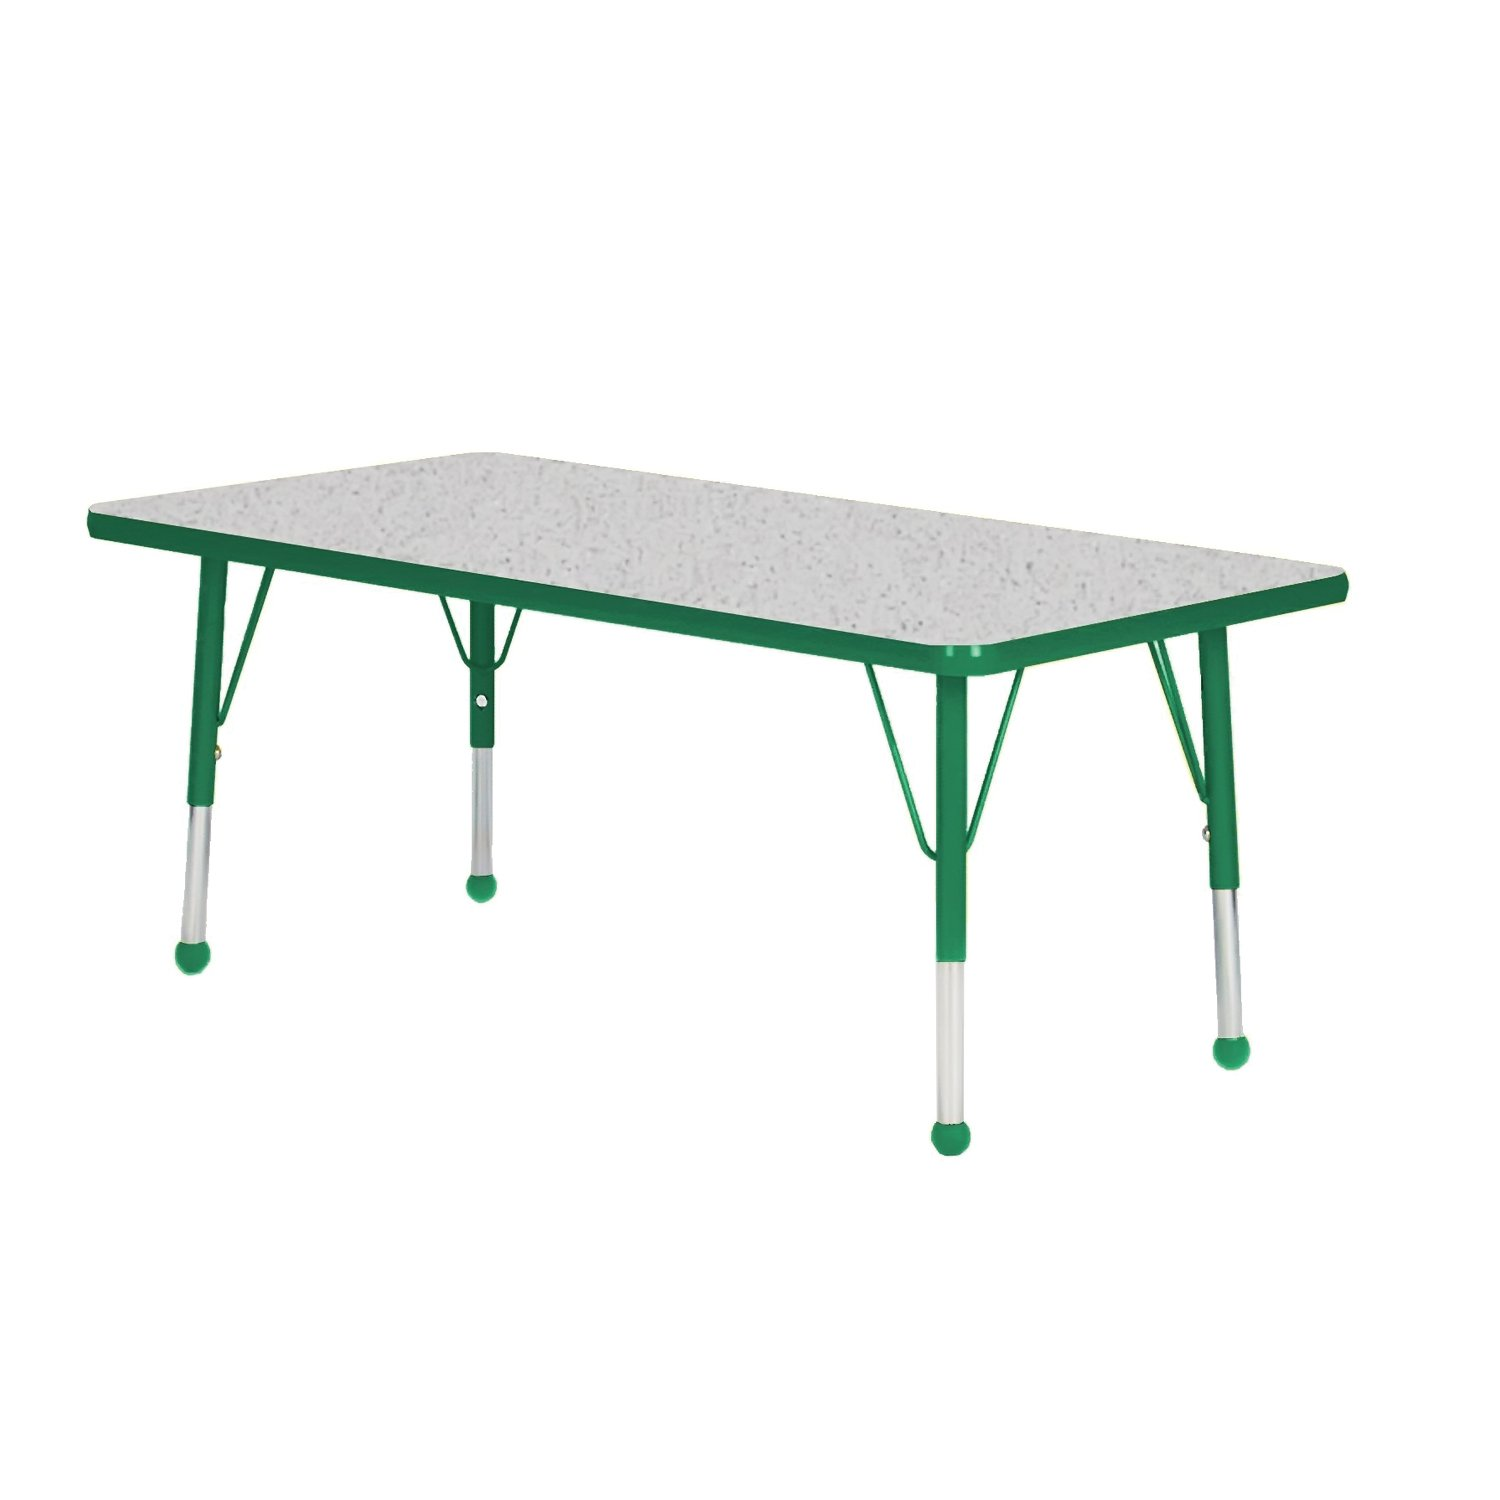 48'' x 30'' Rectangular Classroom Table Table Size: Toddler 16''-24'' Ball Glide, Side Finish: Dustin Green, Top Color: Gray Nebula by Mahar (Image #1)